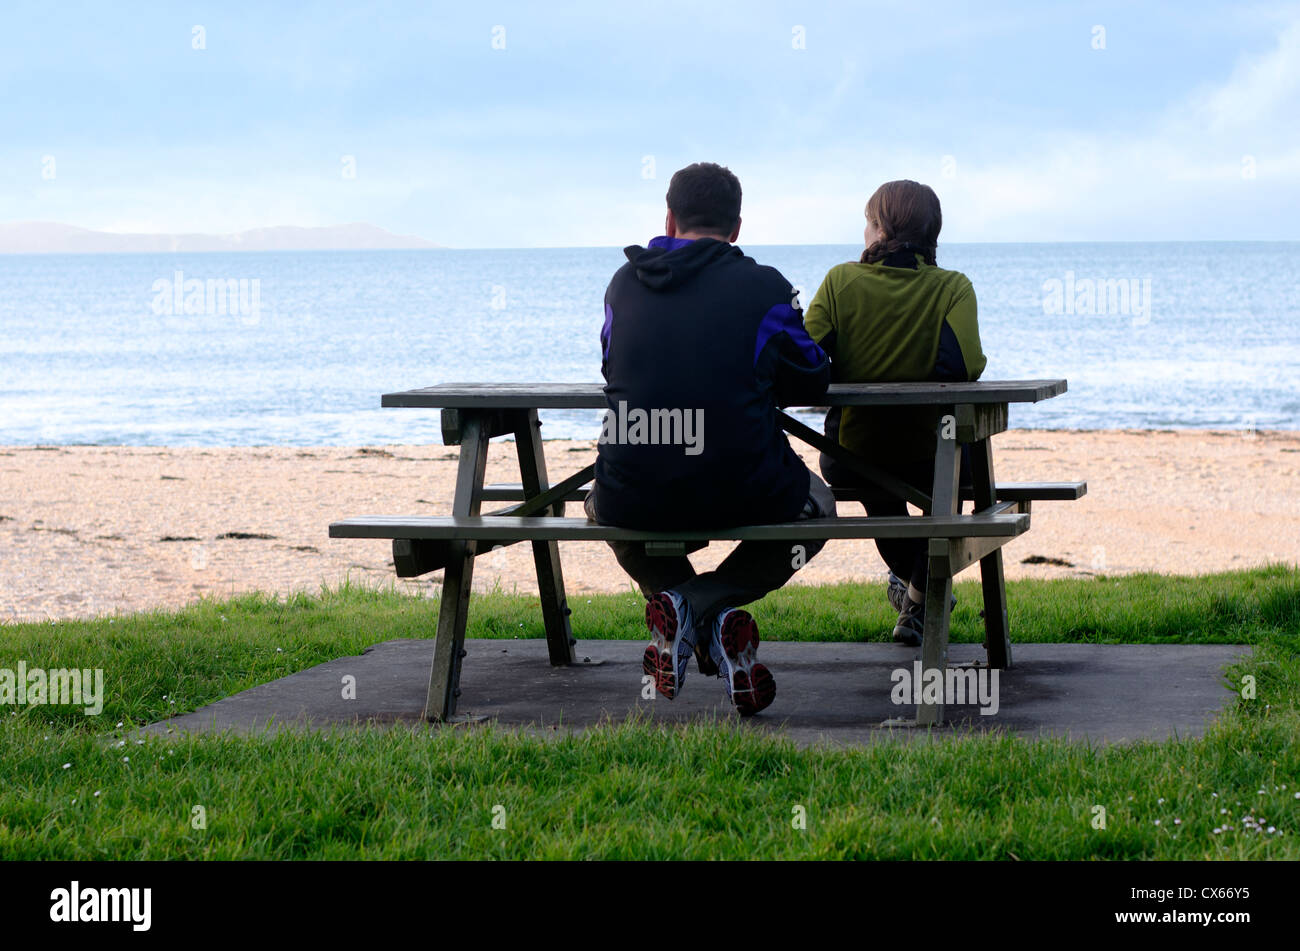 Man and woman sitting on opposite sides of park bench. Copy space above with room for text. - Stock Image